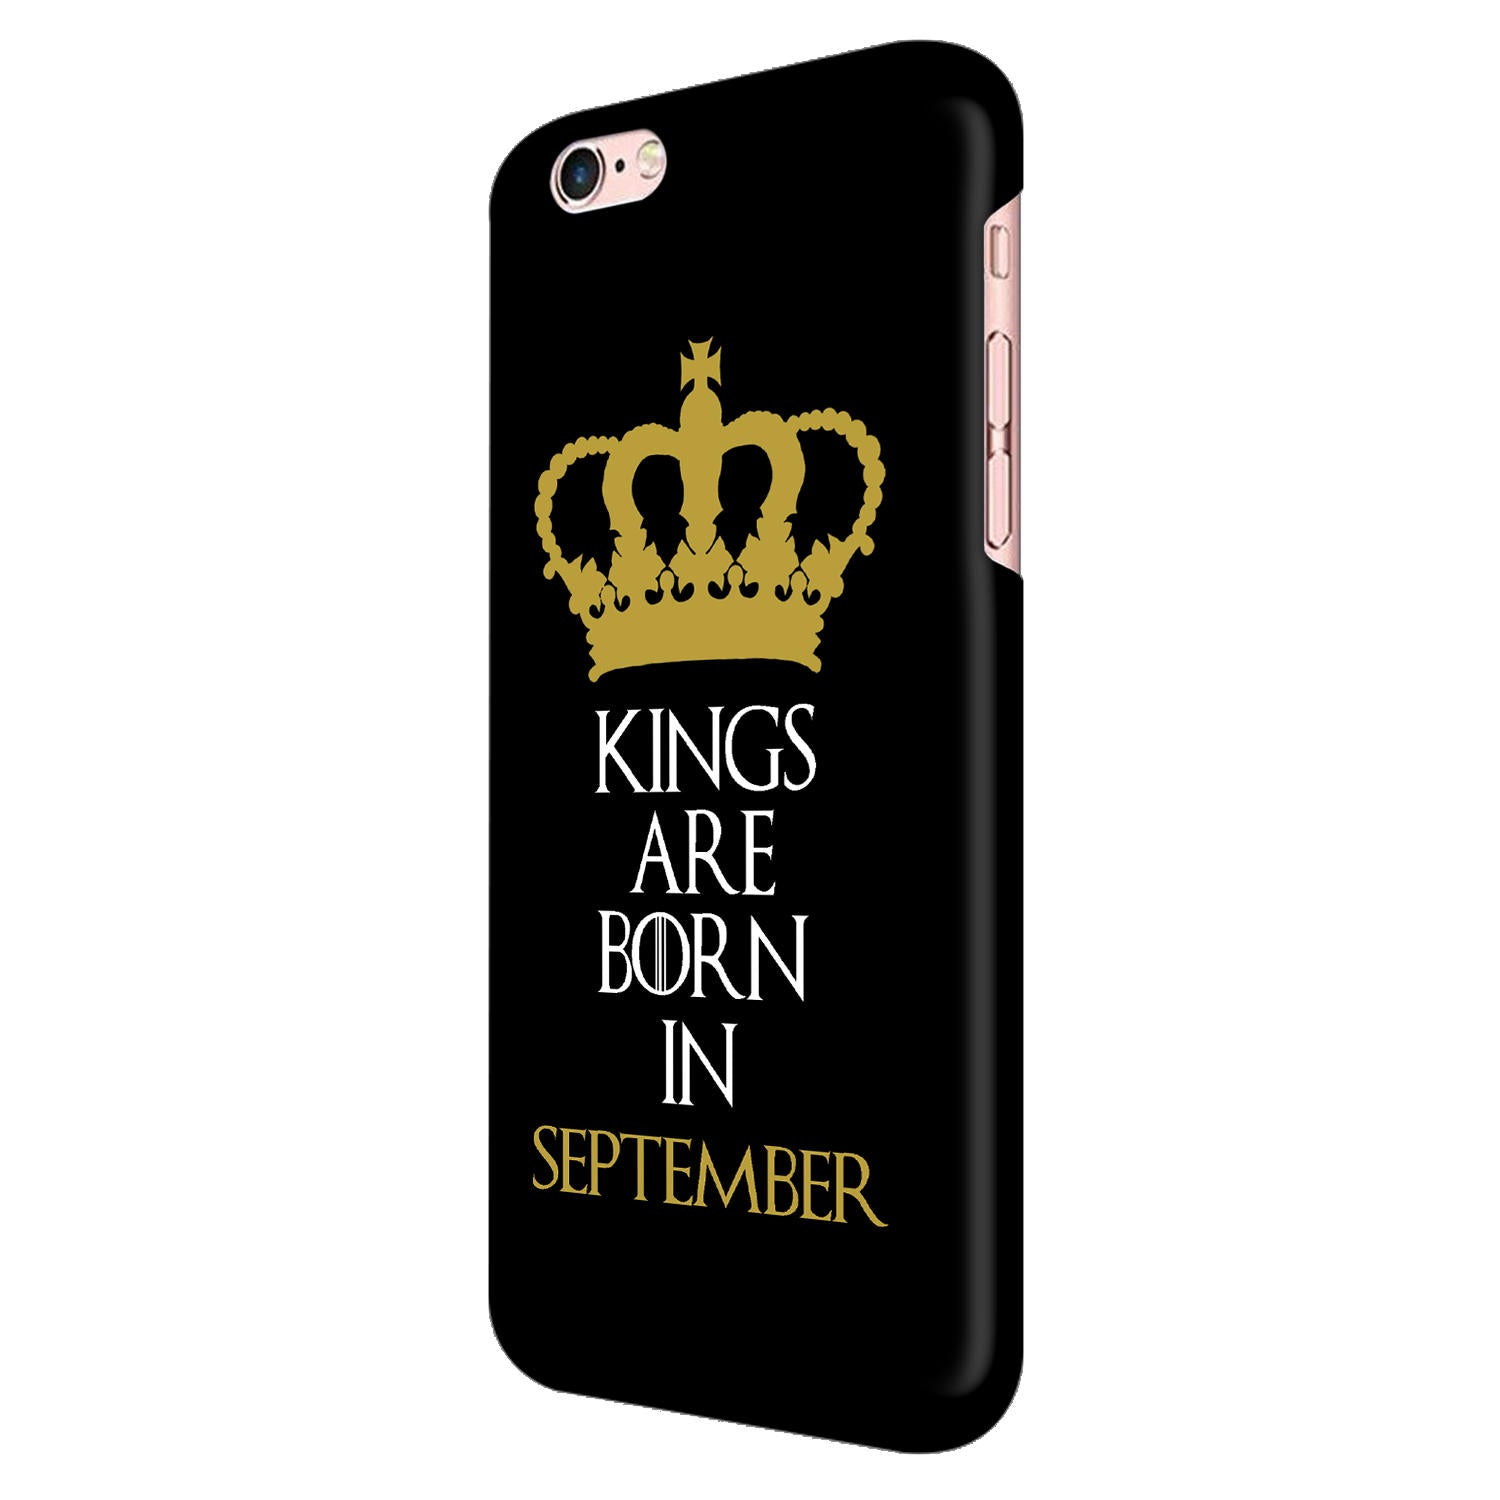 Kings September iPhone 6 Mobile Cover Case - MADANYU